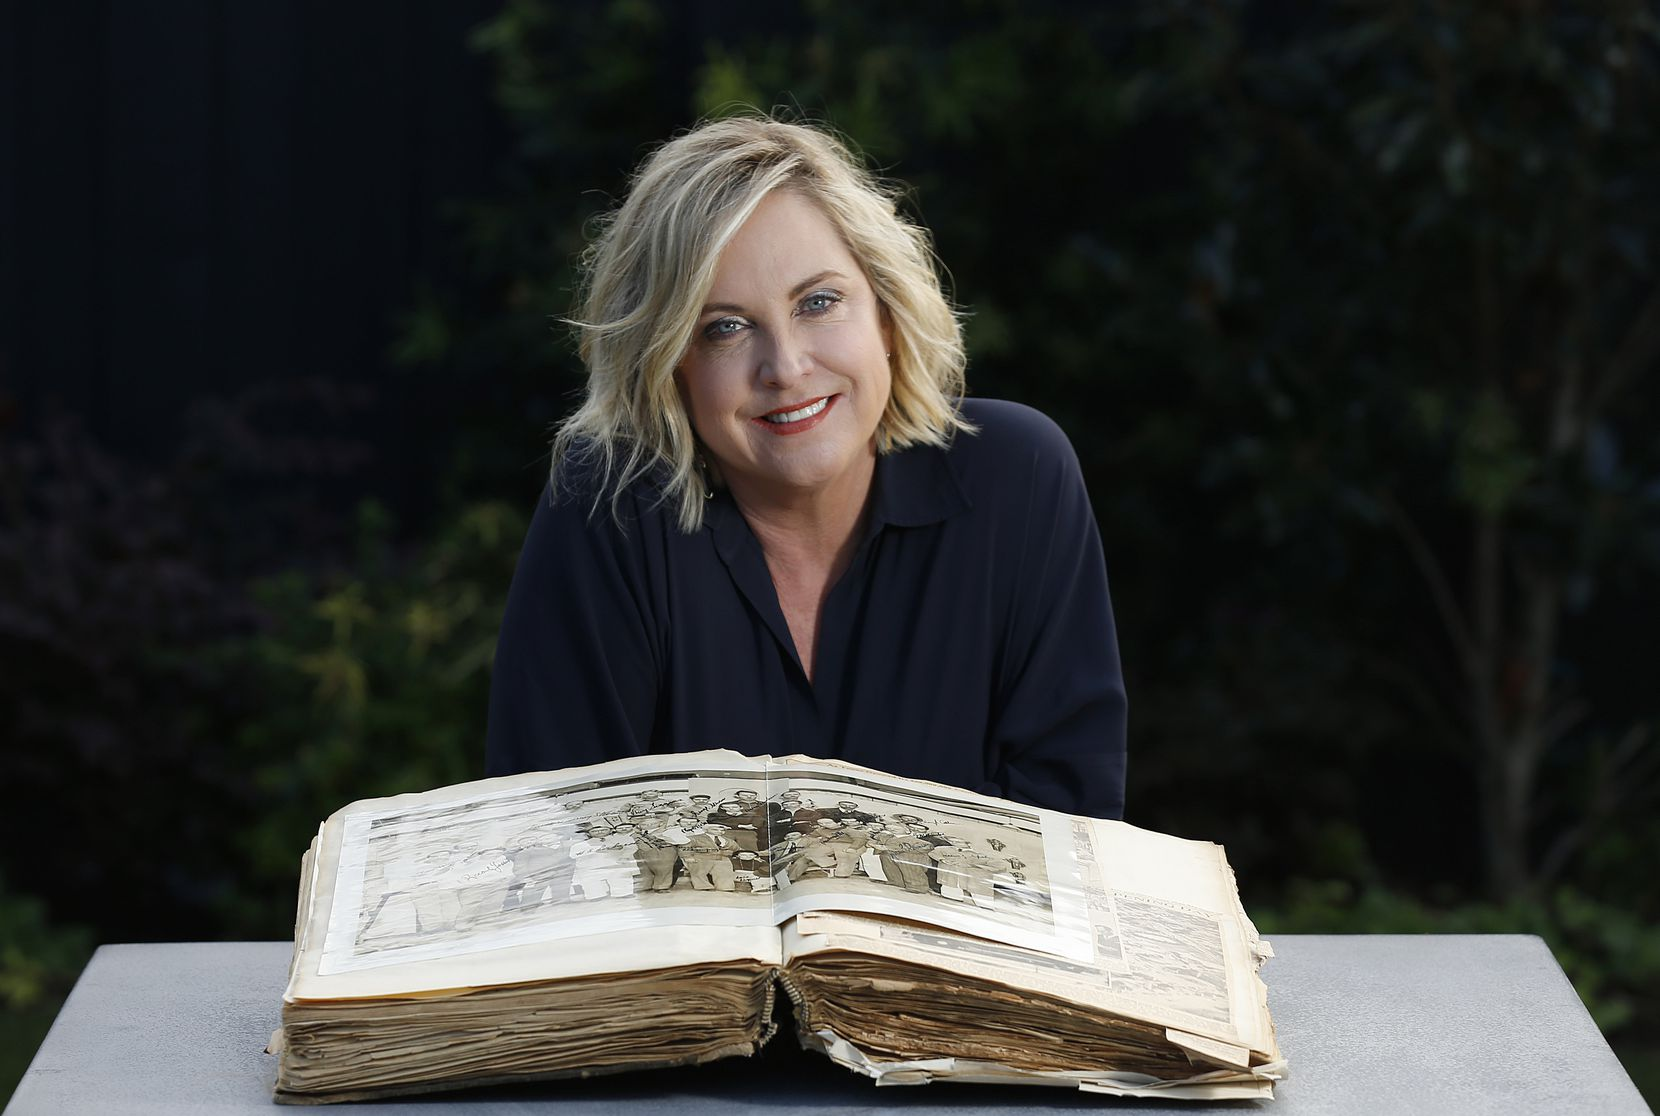 Adrienne Faulkner has been guardian and gatekeeper of her grandfather George Dahl's archives for decades. She wants us to know his story, and his work, before it's lost to history.